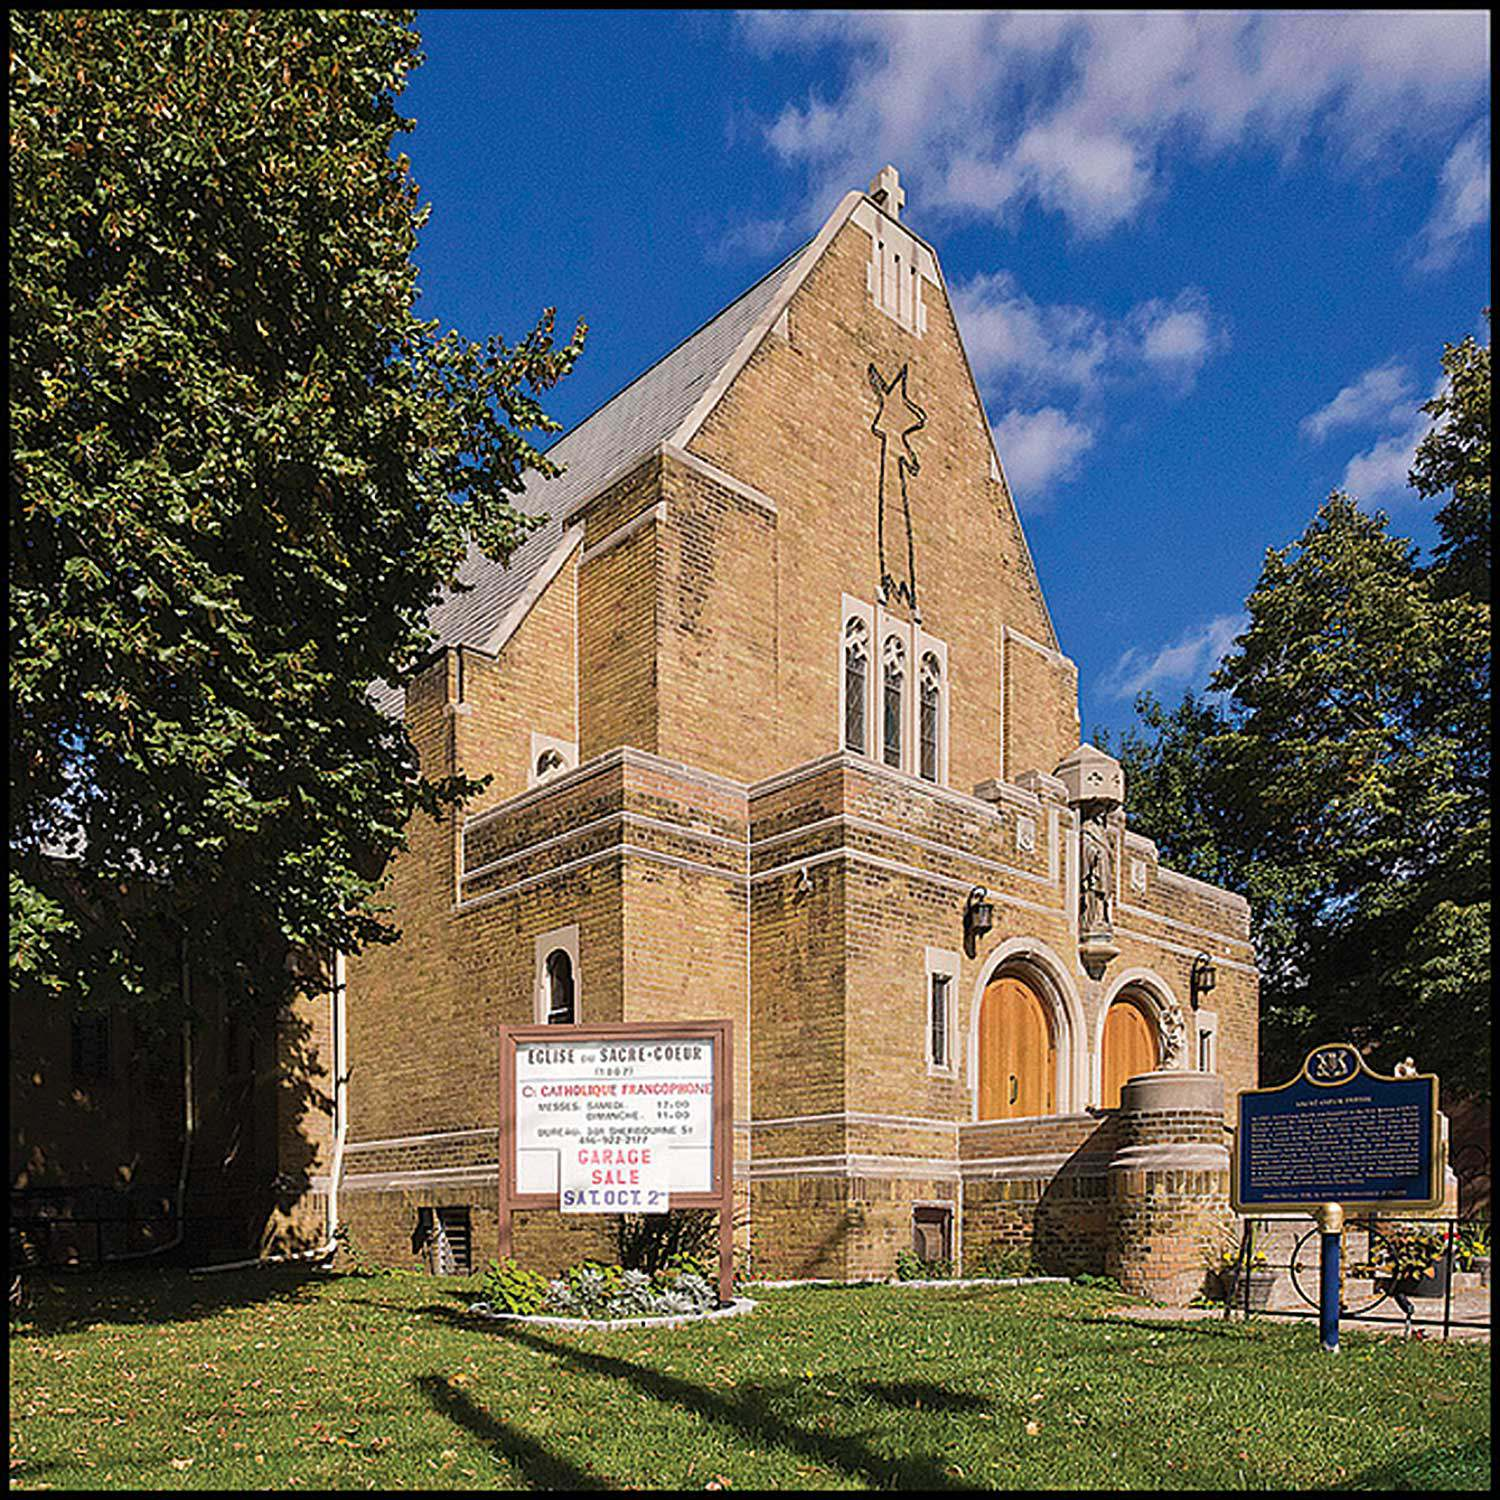 Toronto's Paroisse du Sacré-Cœur is one of dozens of churches across Ontario that assists in keeping the francophone community a viable part of the entire fabric of Ontario.